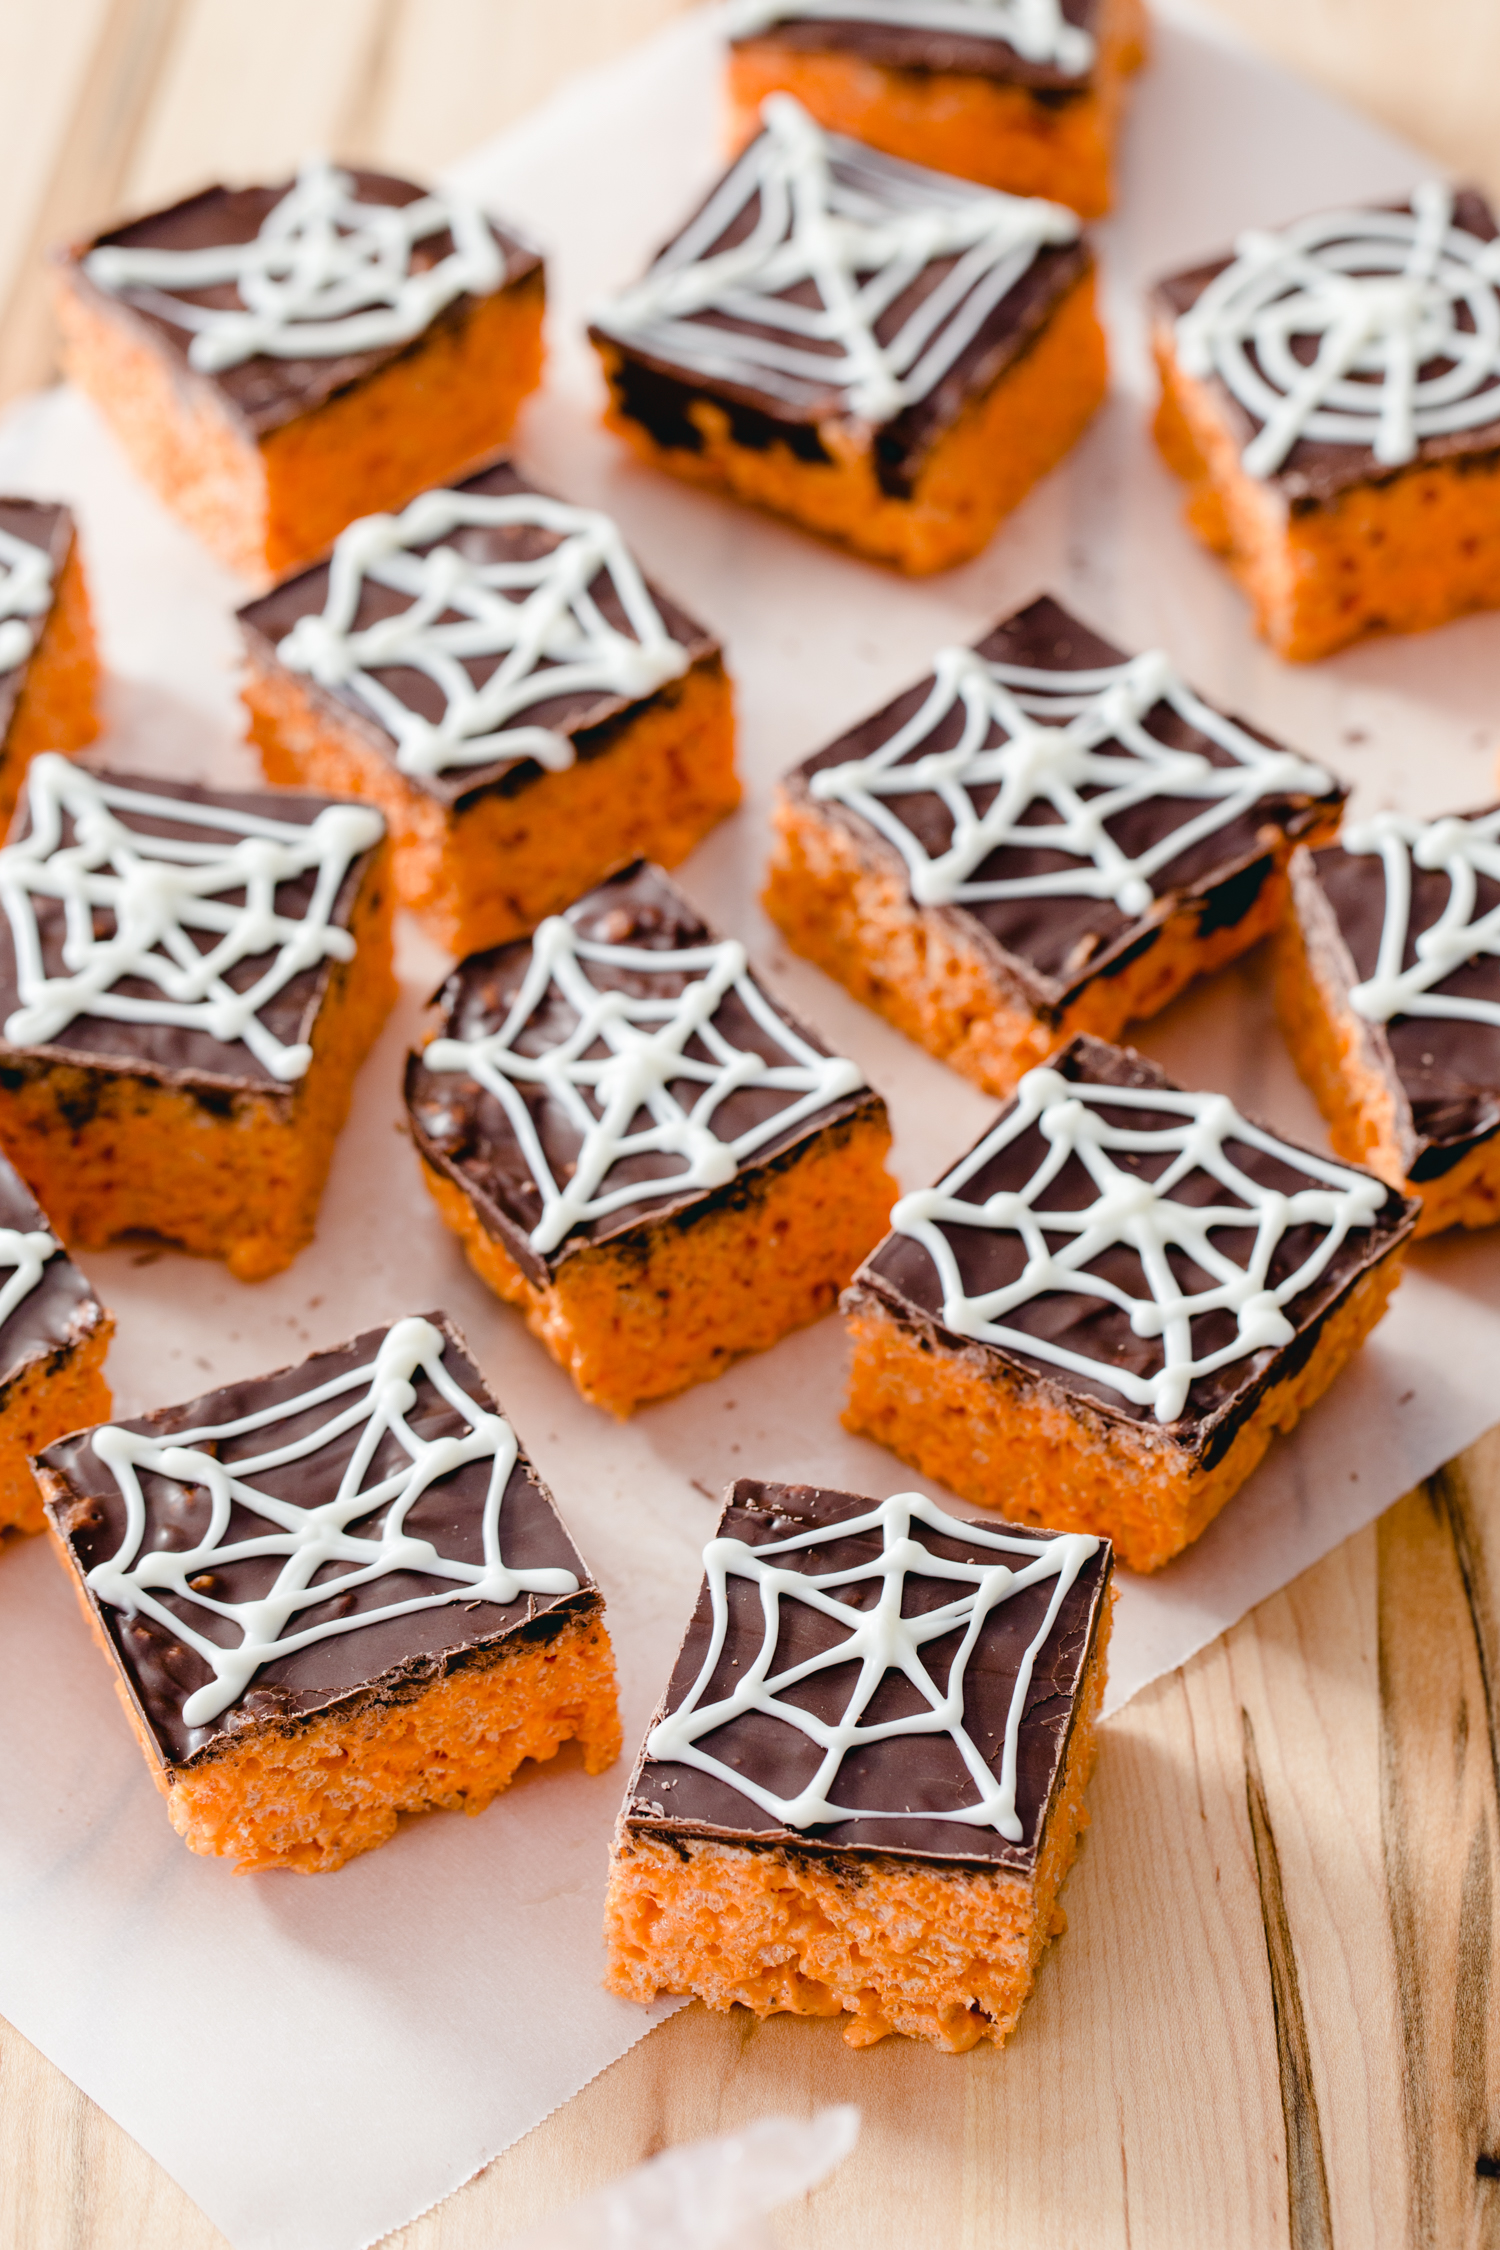 Spider Web Cereal Treats with Campfire HallowMallows from Jelly Toast